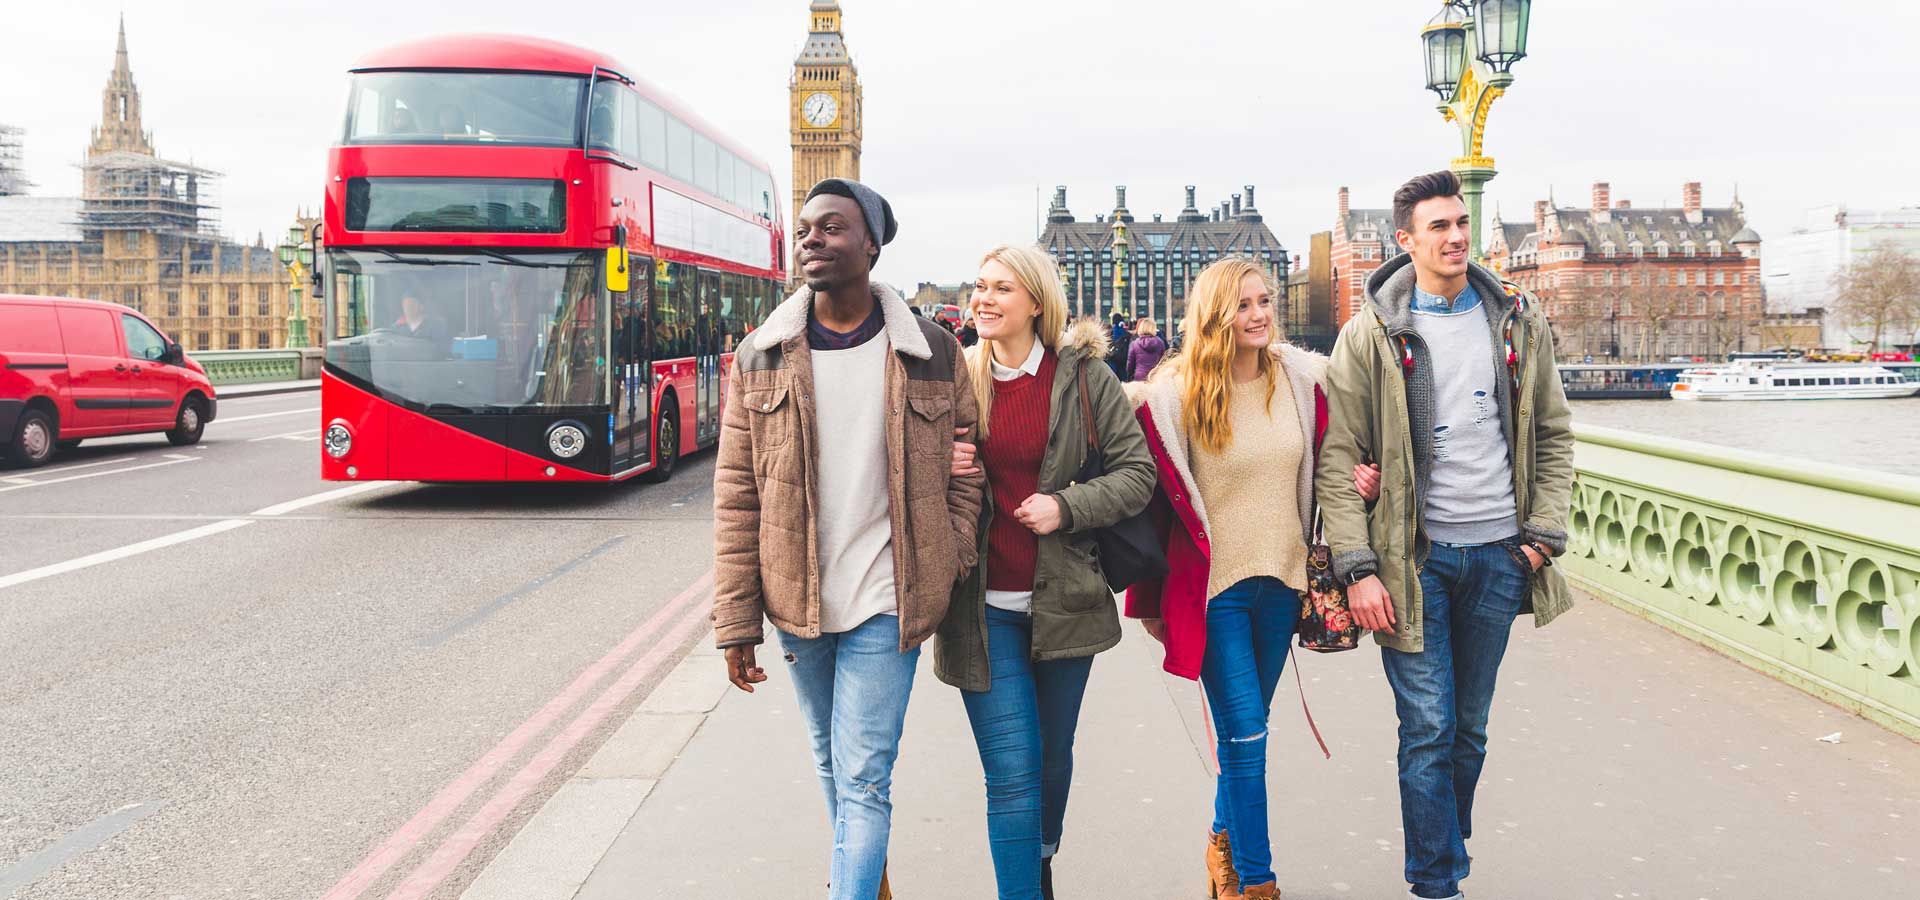 Local Vacation Tips: Things To Do In London Like A Brit